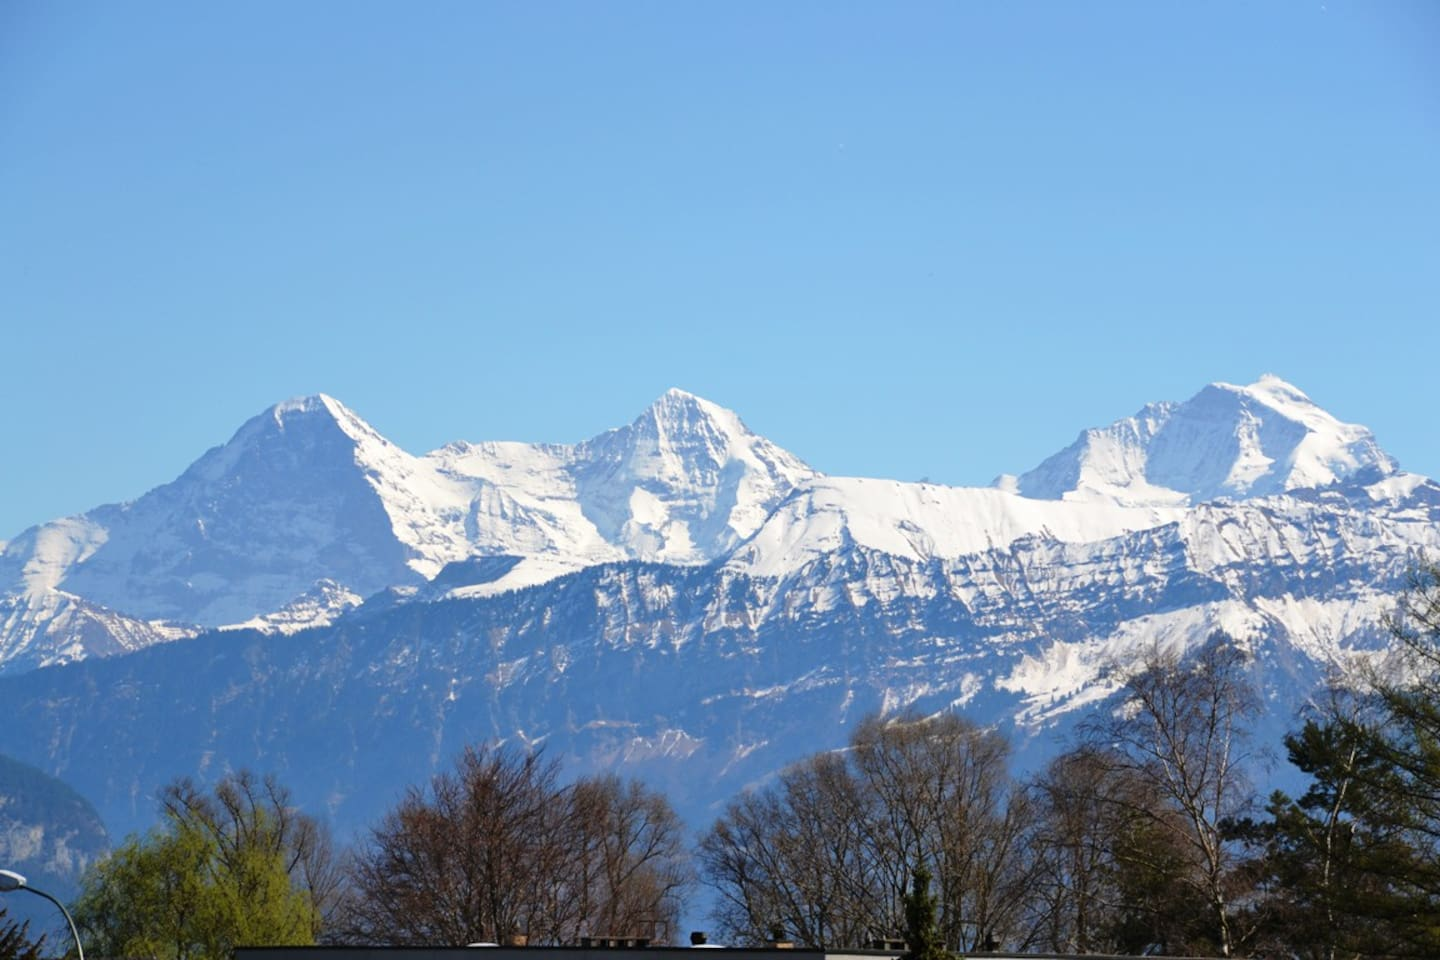 This is the view out of the rooftop-window!! Eiger -- Monch -- Jungfrau and Schilthorn in winter.